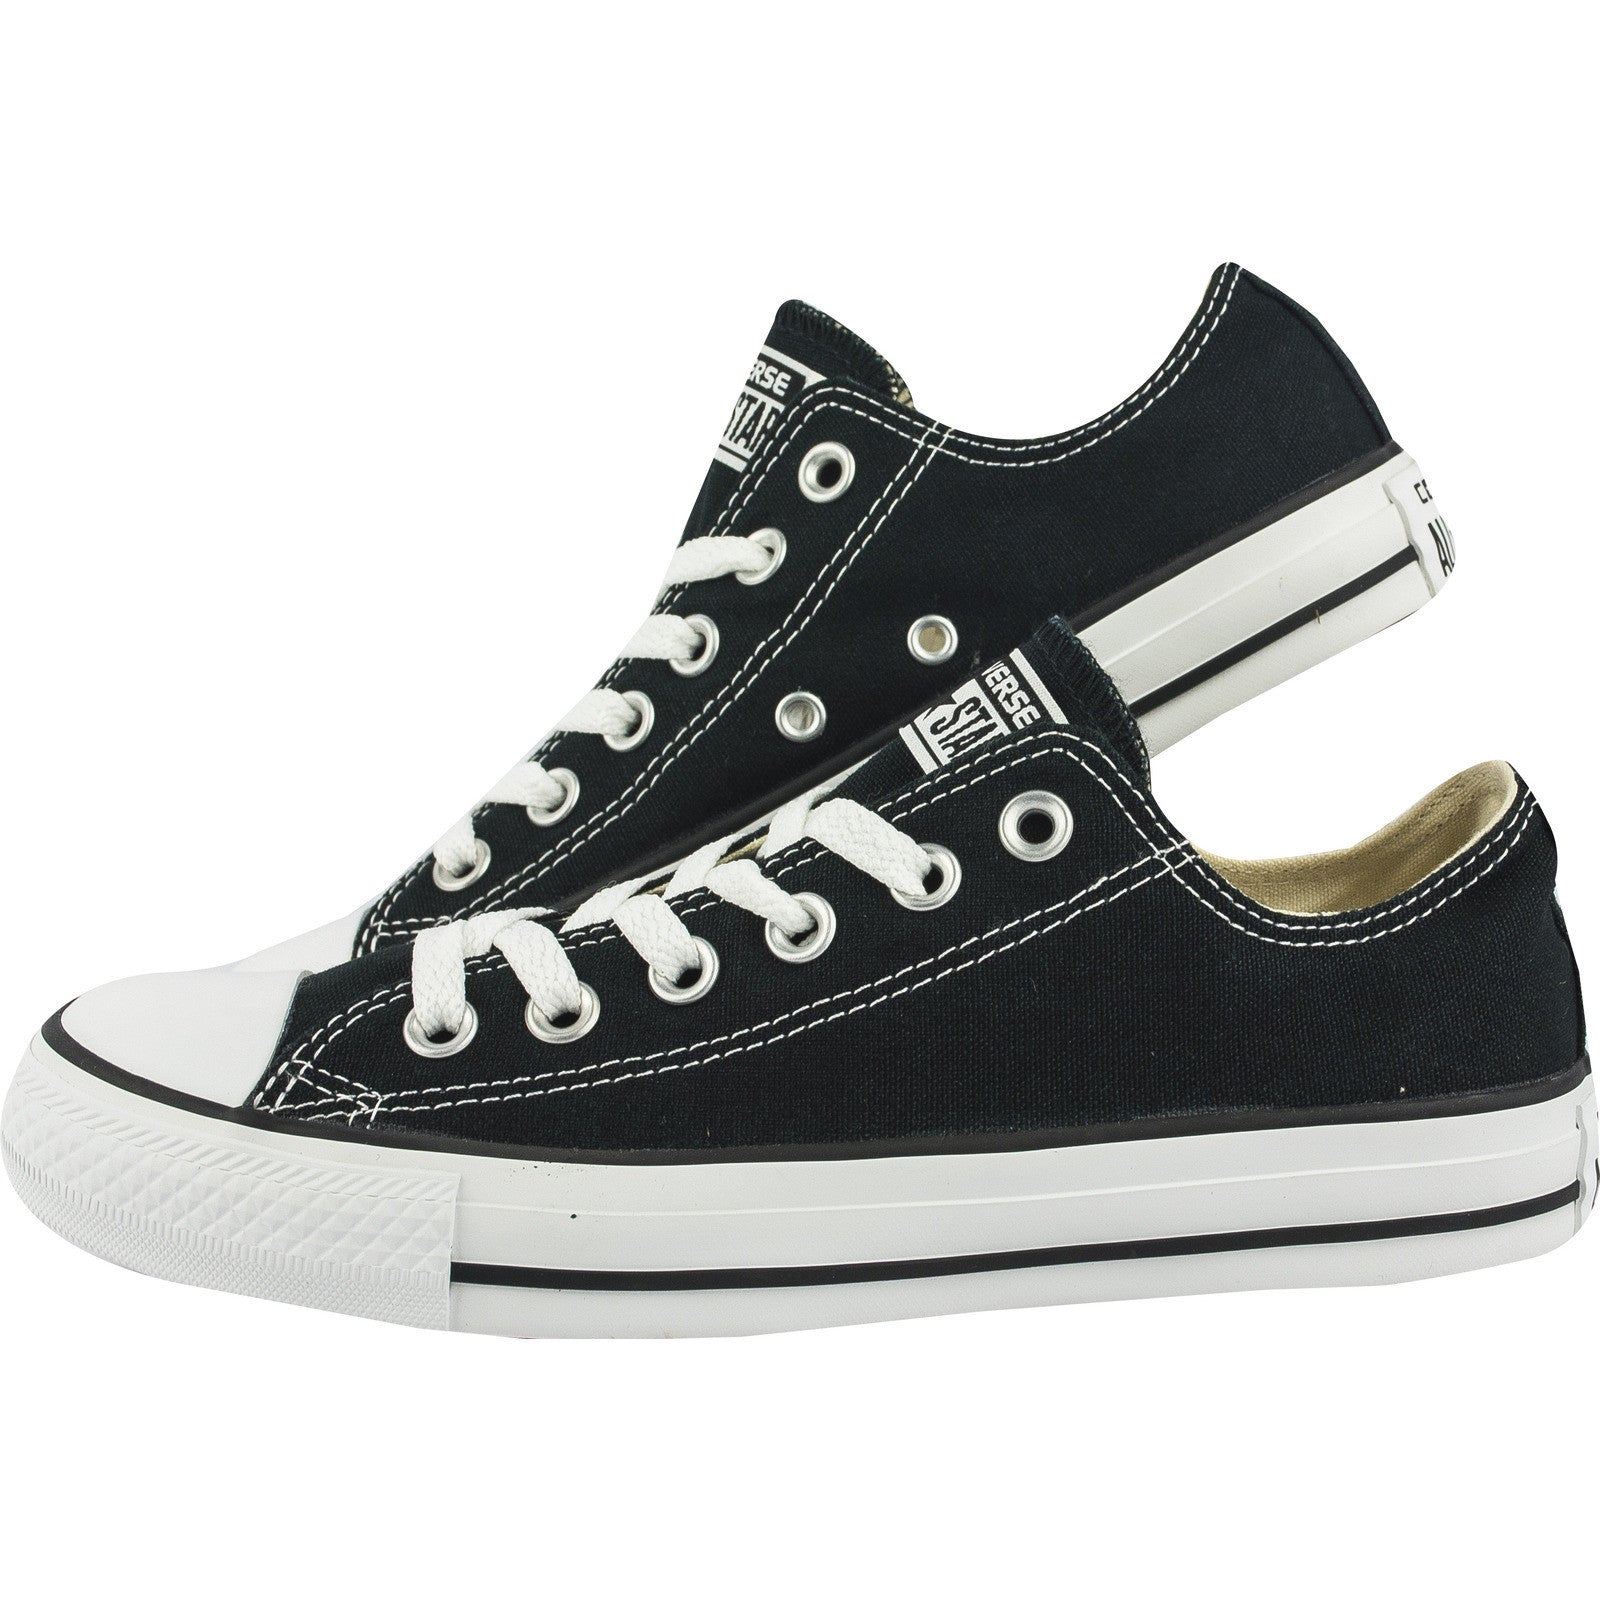 Converse Classic Chuck Taylor All Star Black Low Tops M9166C Sneaker Men  Women ... 5d1b9f1d2